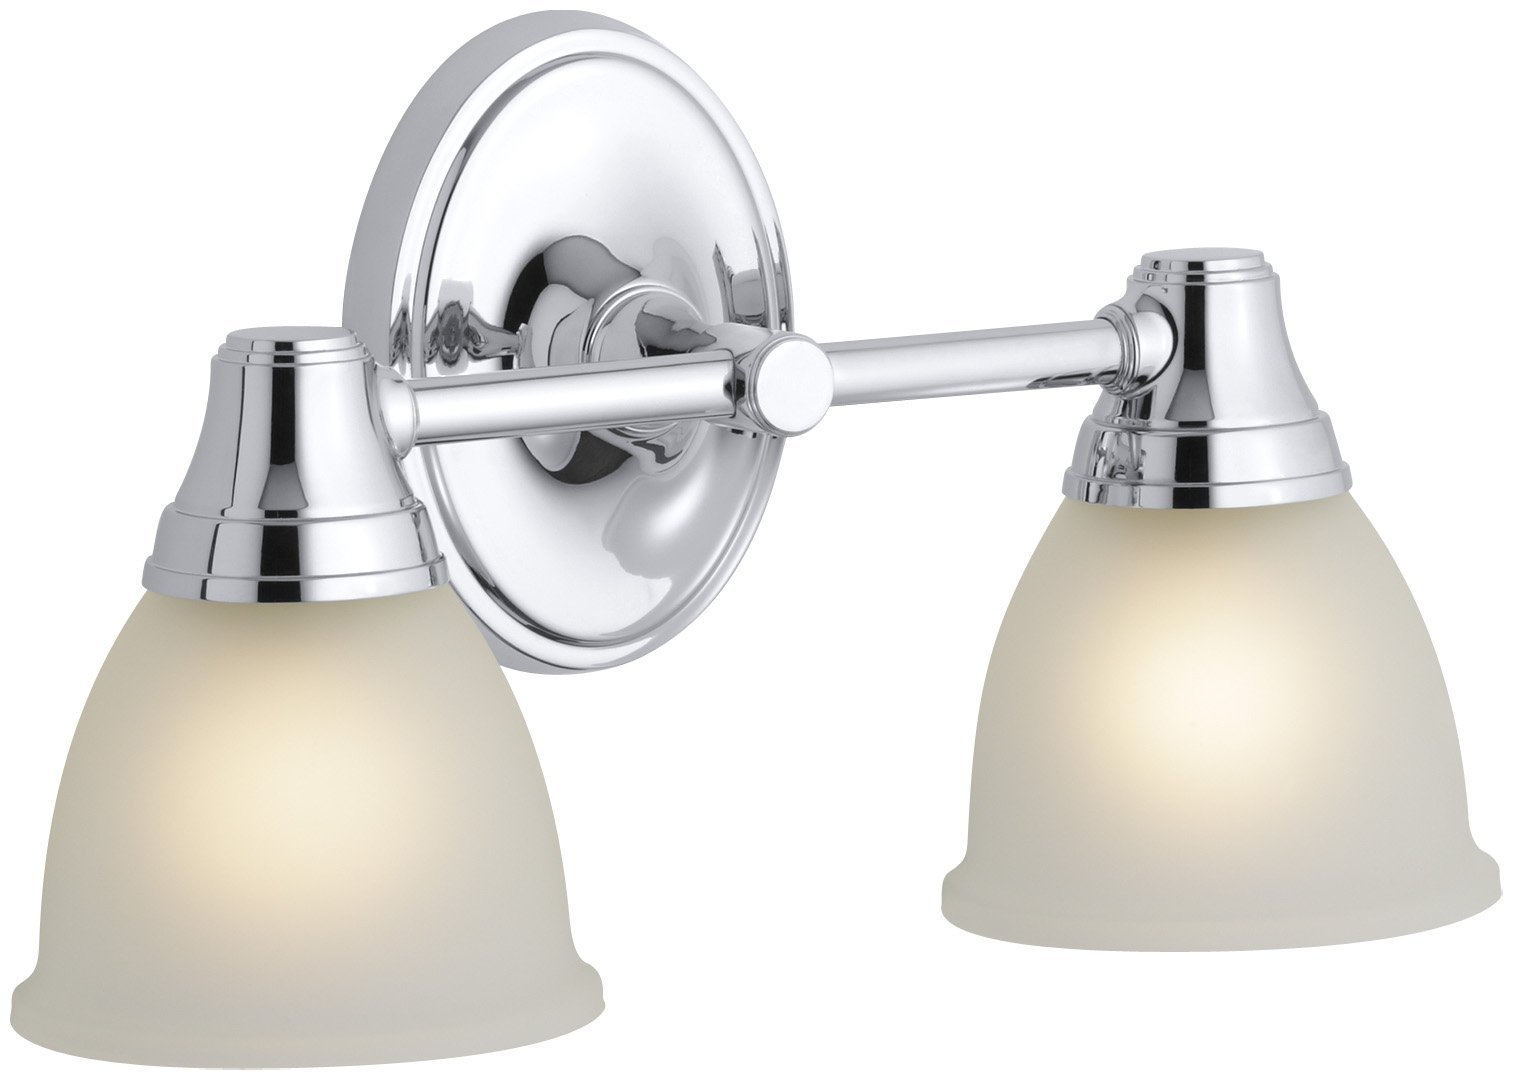 KOHLER K-11366-CP Transitional Double Wall Sconce for Forte Faucet Line, Polished Chrome